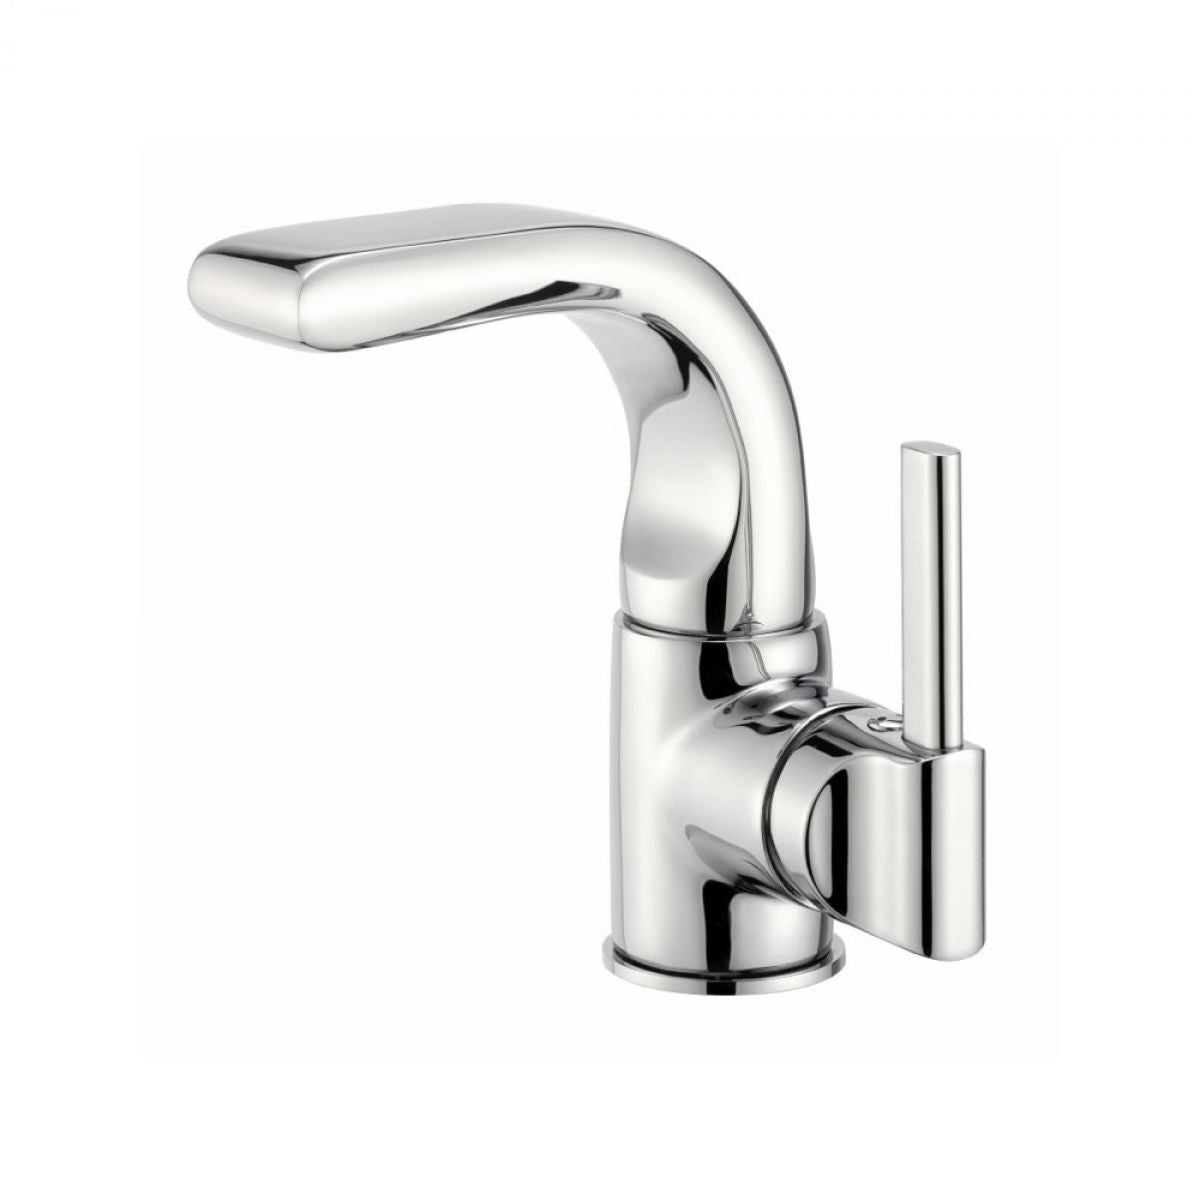 Francis Pegler Panacea Mini Monobloc Basin Mixer - blueskybathrooms